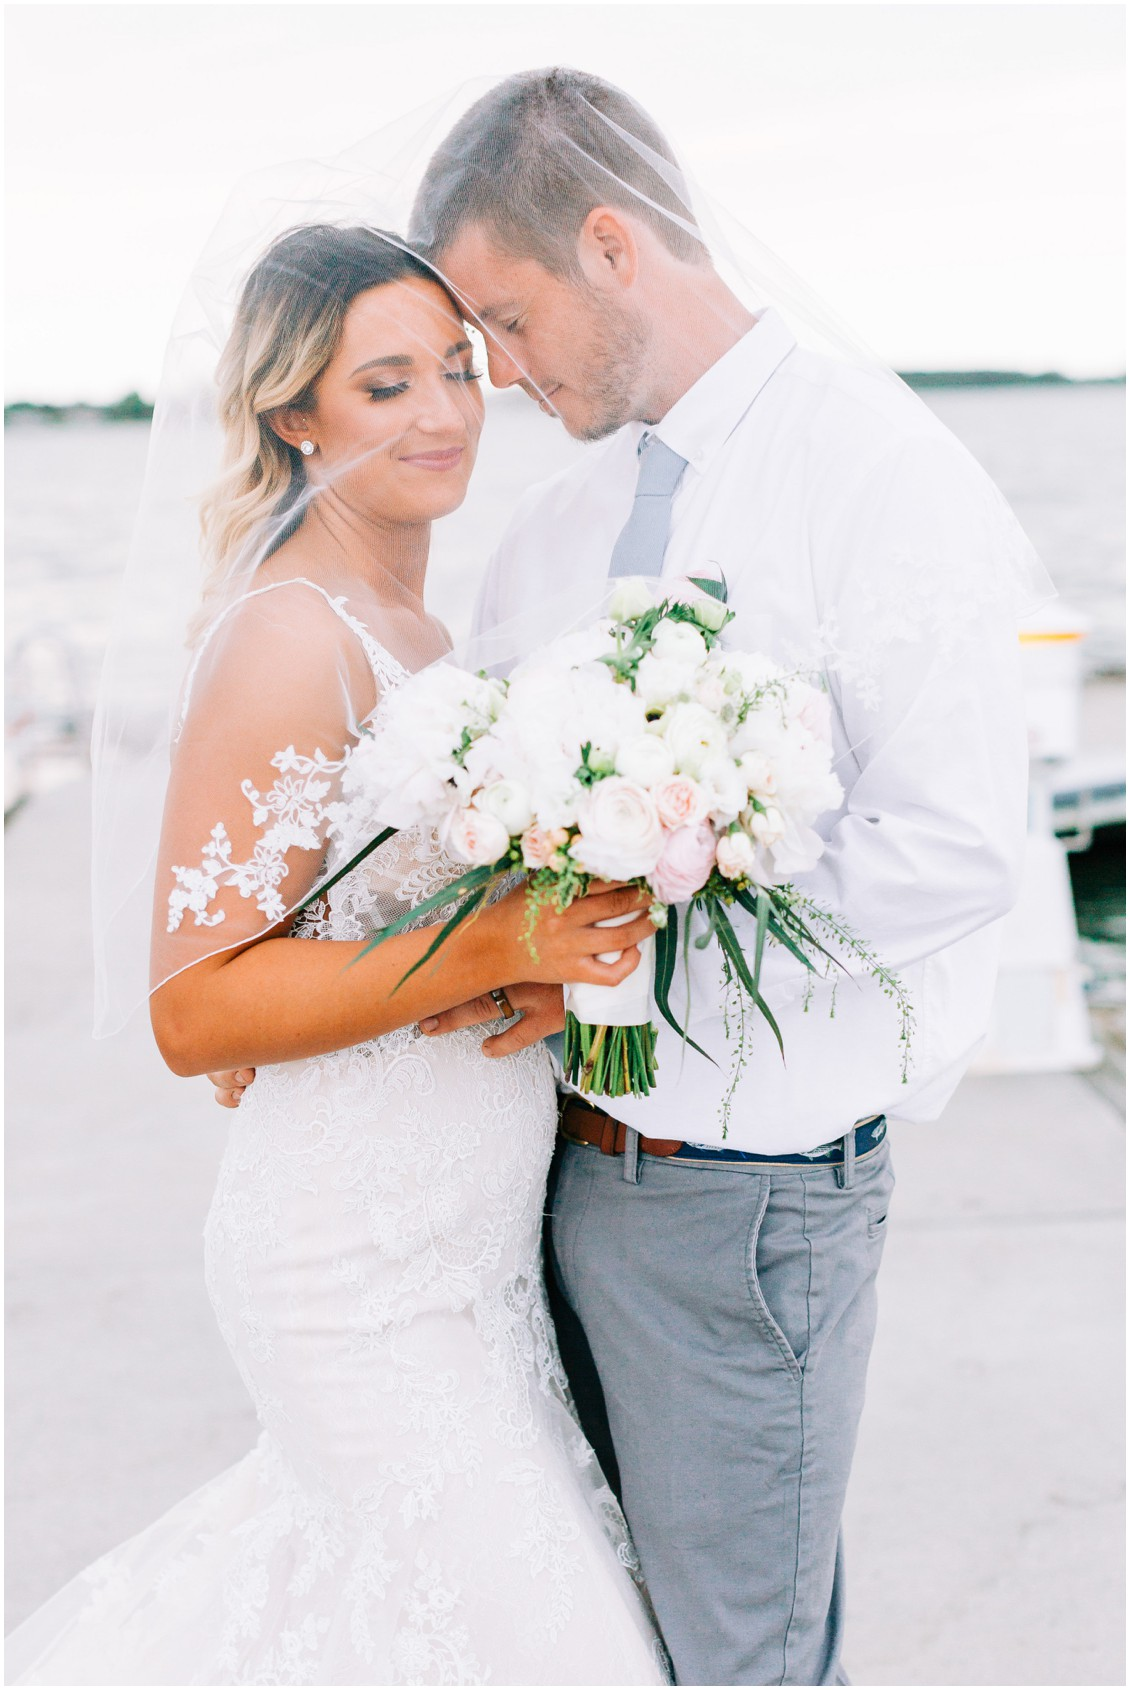 Bride and groom at Tred Avon Yacht Club | Couple under bride's wedding veil | Sherwood Florist | My Eastern Shore Wedding |